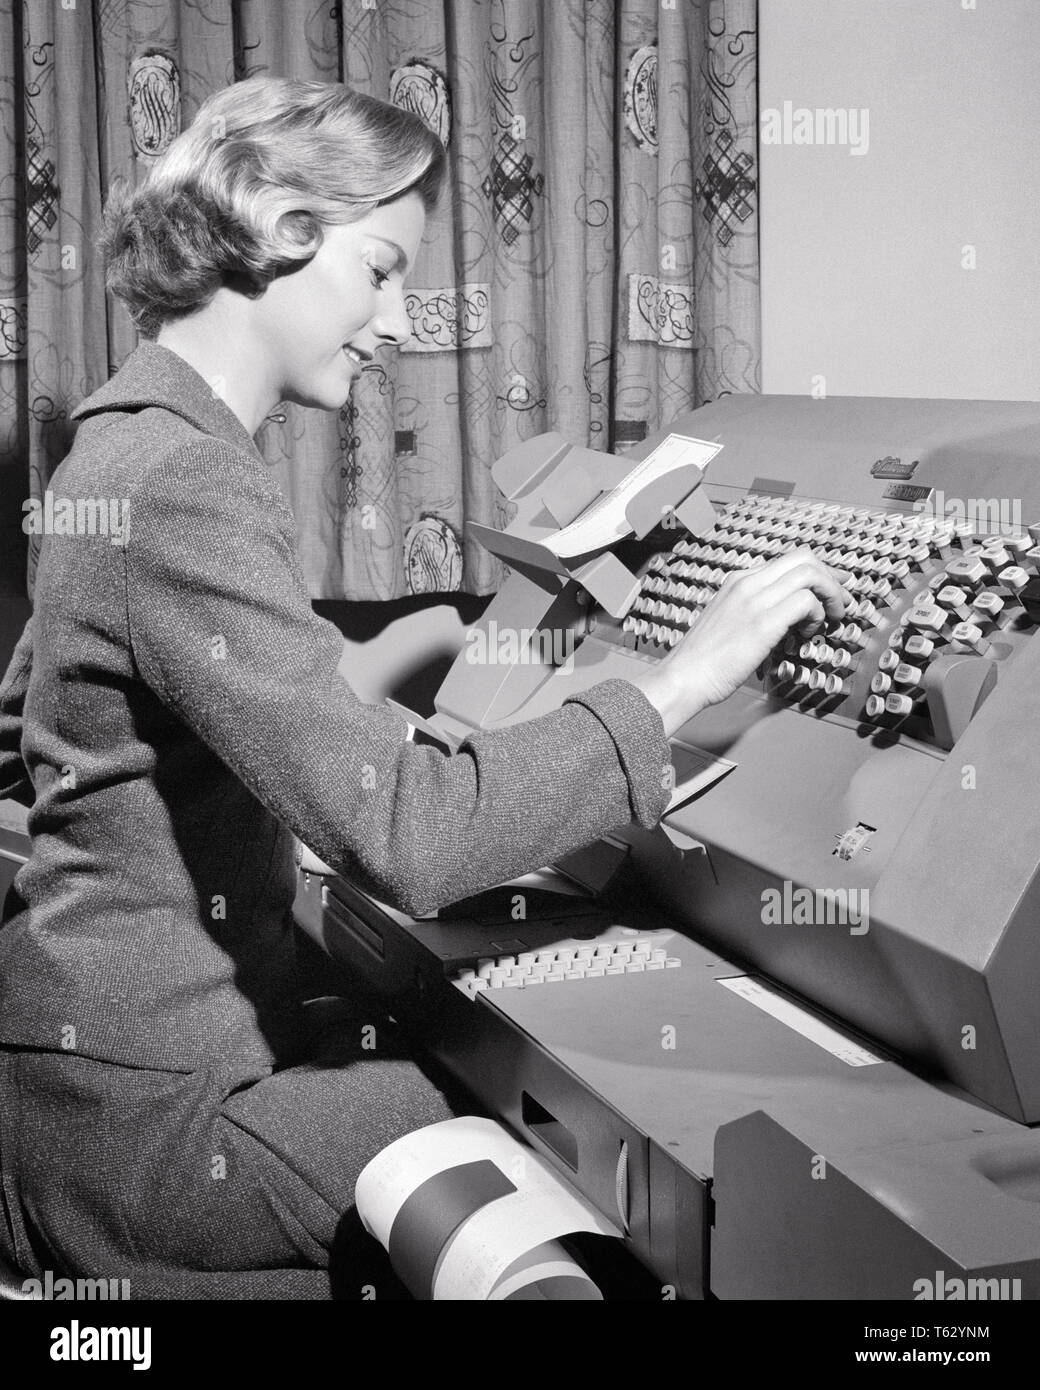 1950s WOMAN WORKING AT DATA PROCESSING CARDATYPE MACHINE - o402 HAR001 HARS B&W DATA PROCESSING SKILL OCCUPATION SKILLS ELECTRONICS PROGRESS INNOVATION LABOR CREATING EMPLOYMENT OCCUPATIONS DATA ENTRY ACCOUNTING SECRETARIES EMPLOYEE ENTRY KEY PUNCH MID-ADULT MID-ADULT WOMAN YOUNG ADULT WOMAN BLACK AND WHITE CAUCASIAN ETHNICITY CLERICAL HAR001 LABORING OLD FASHIONED - Stock Image